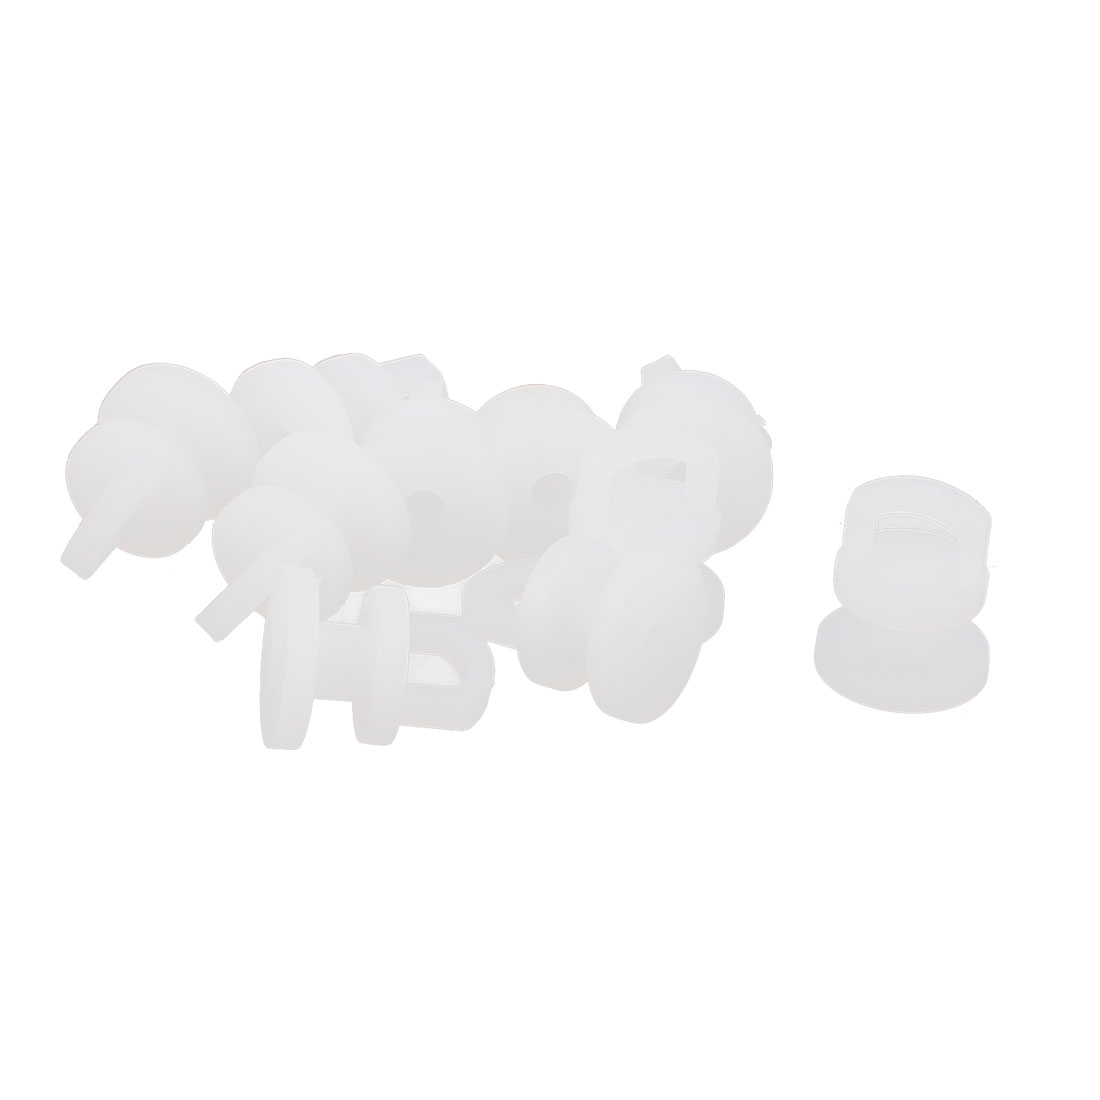 10pcs Plastic Curtain Glider Track Rail Carrier Slide Wheels Rollers White